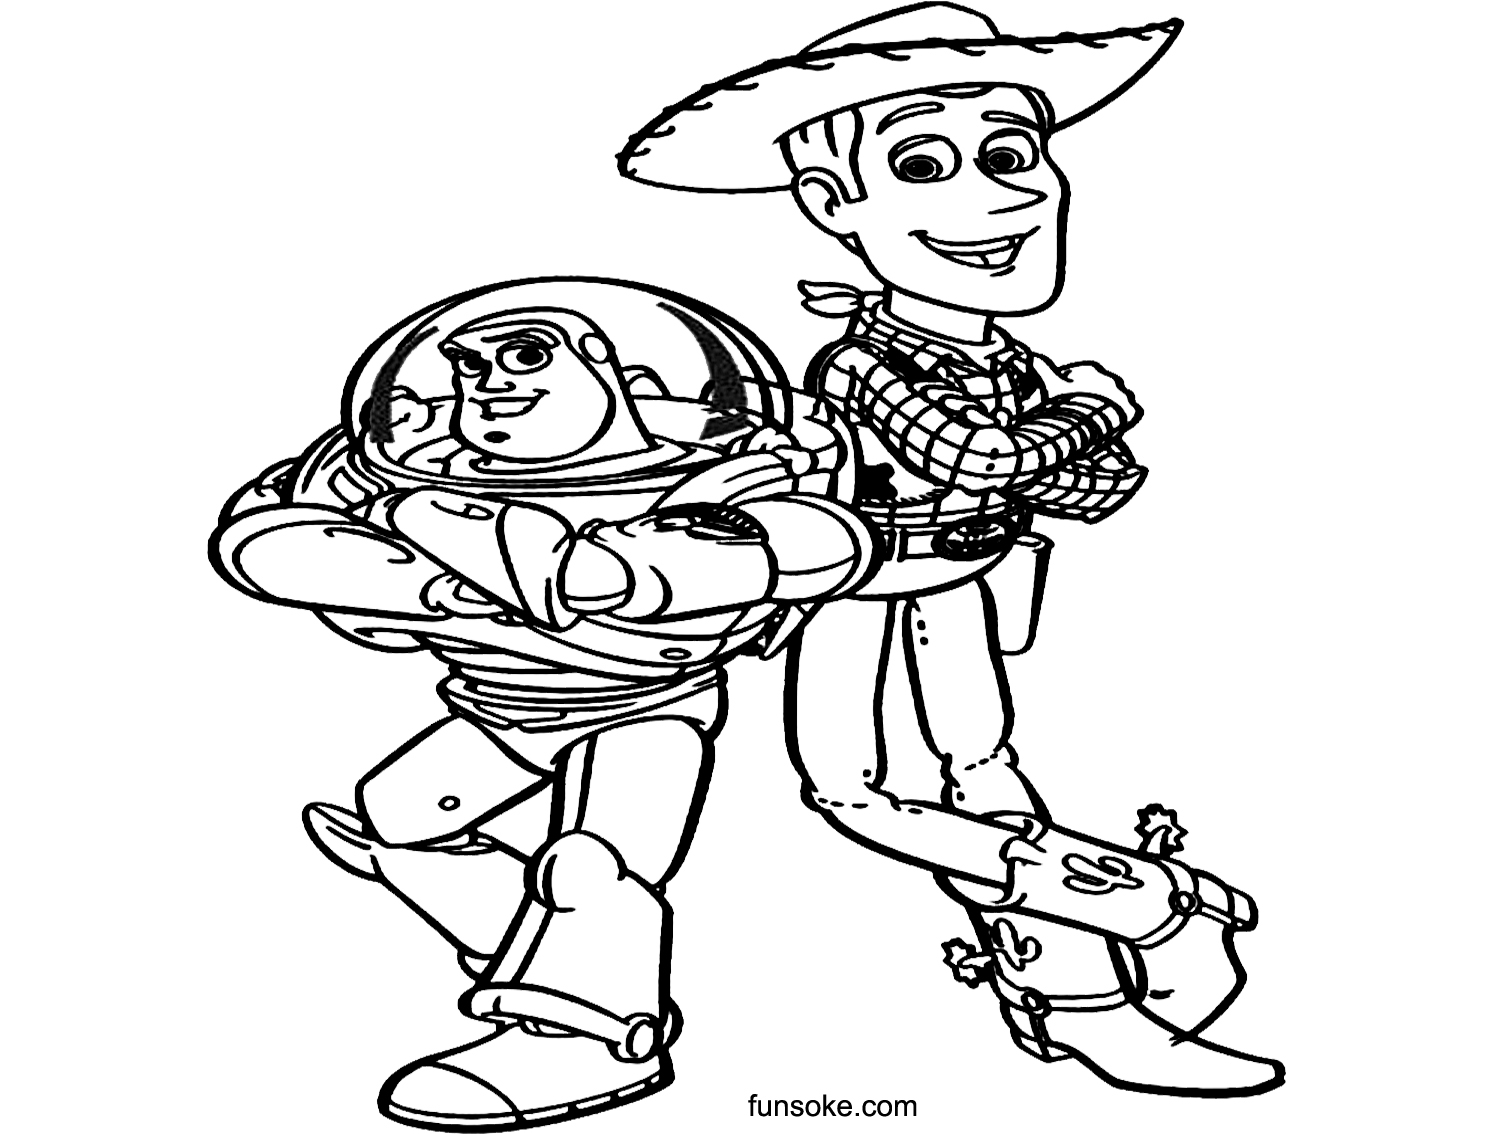 coloring pages of toy story colouring pages woody toy story funsoke of coloring story pages toy